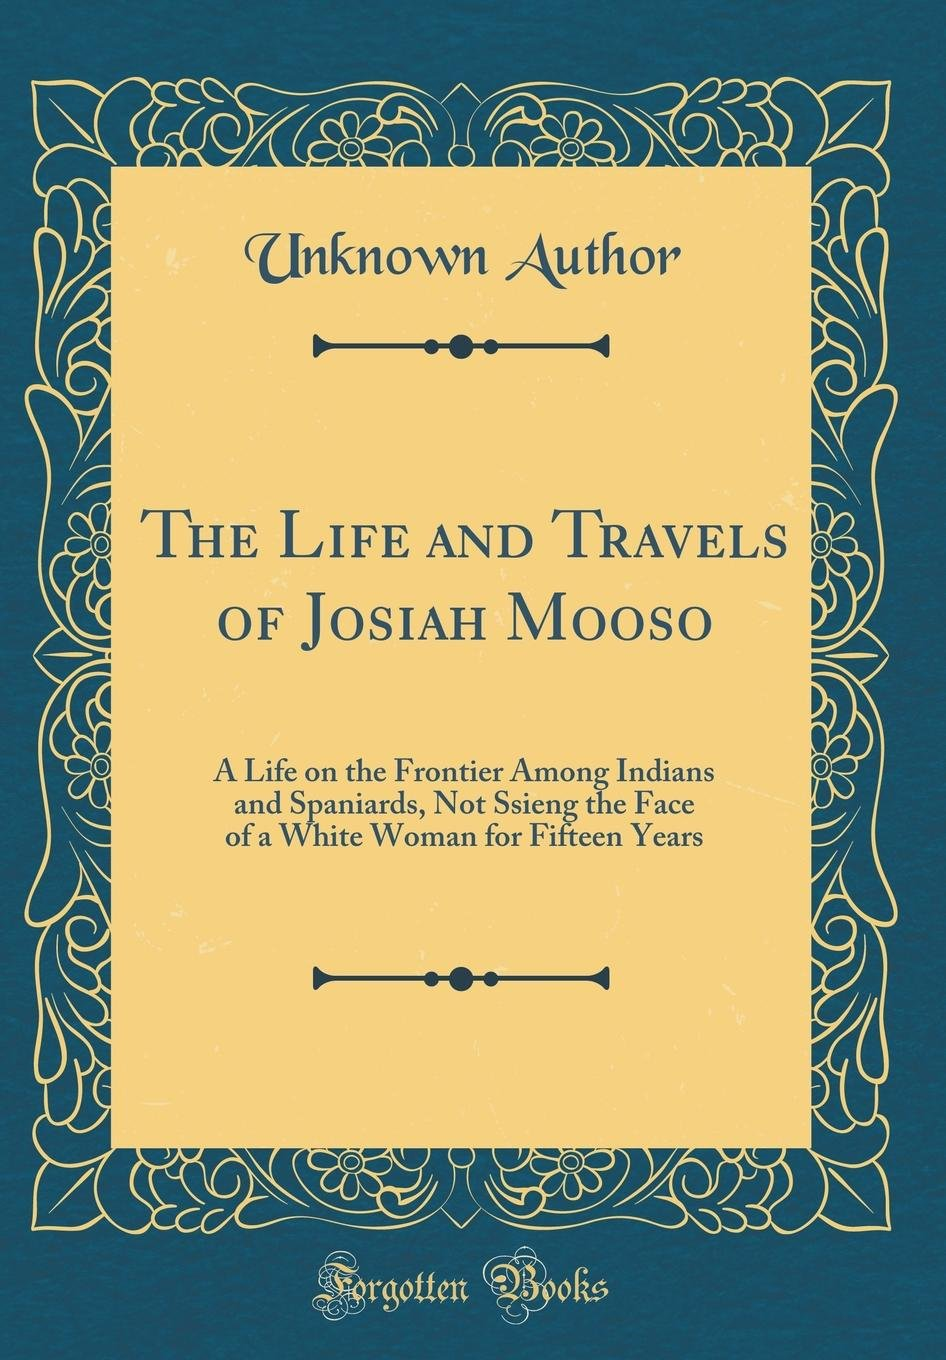 The Life and Travels of Josiah Mooso: A Life on the Frontier Among Indians and Spaniards, Not Ssieng the Face of a White Woman for Fifteen Years (Classic Reprint) pdf epub